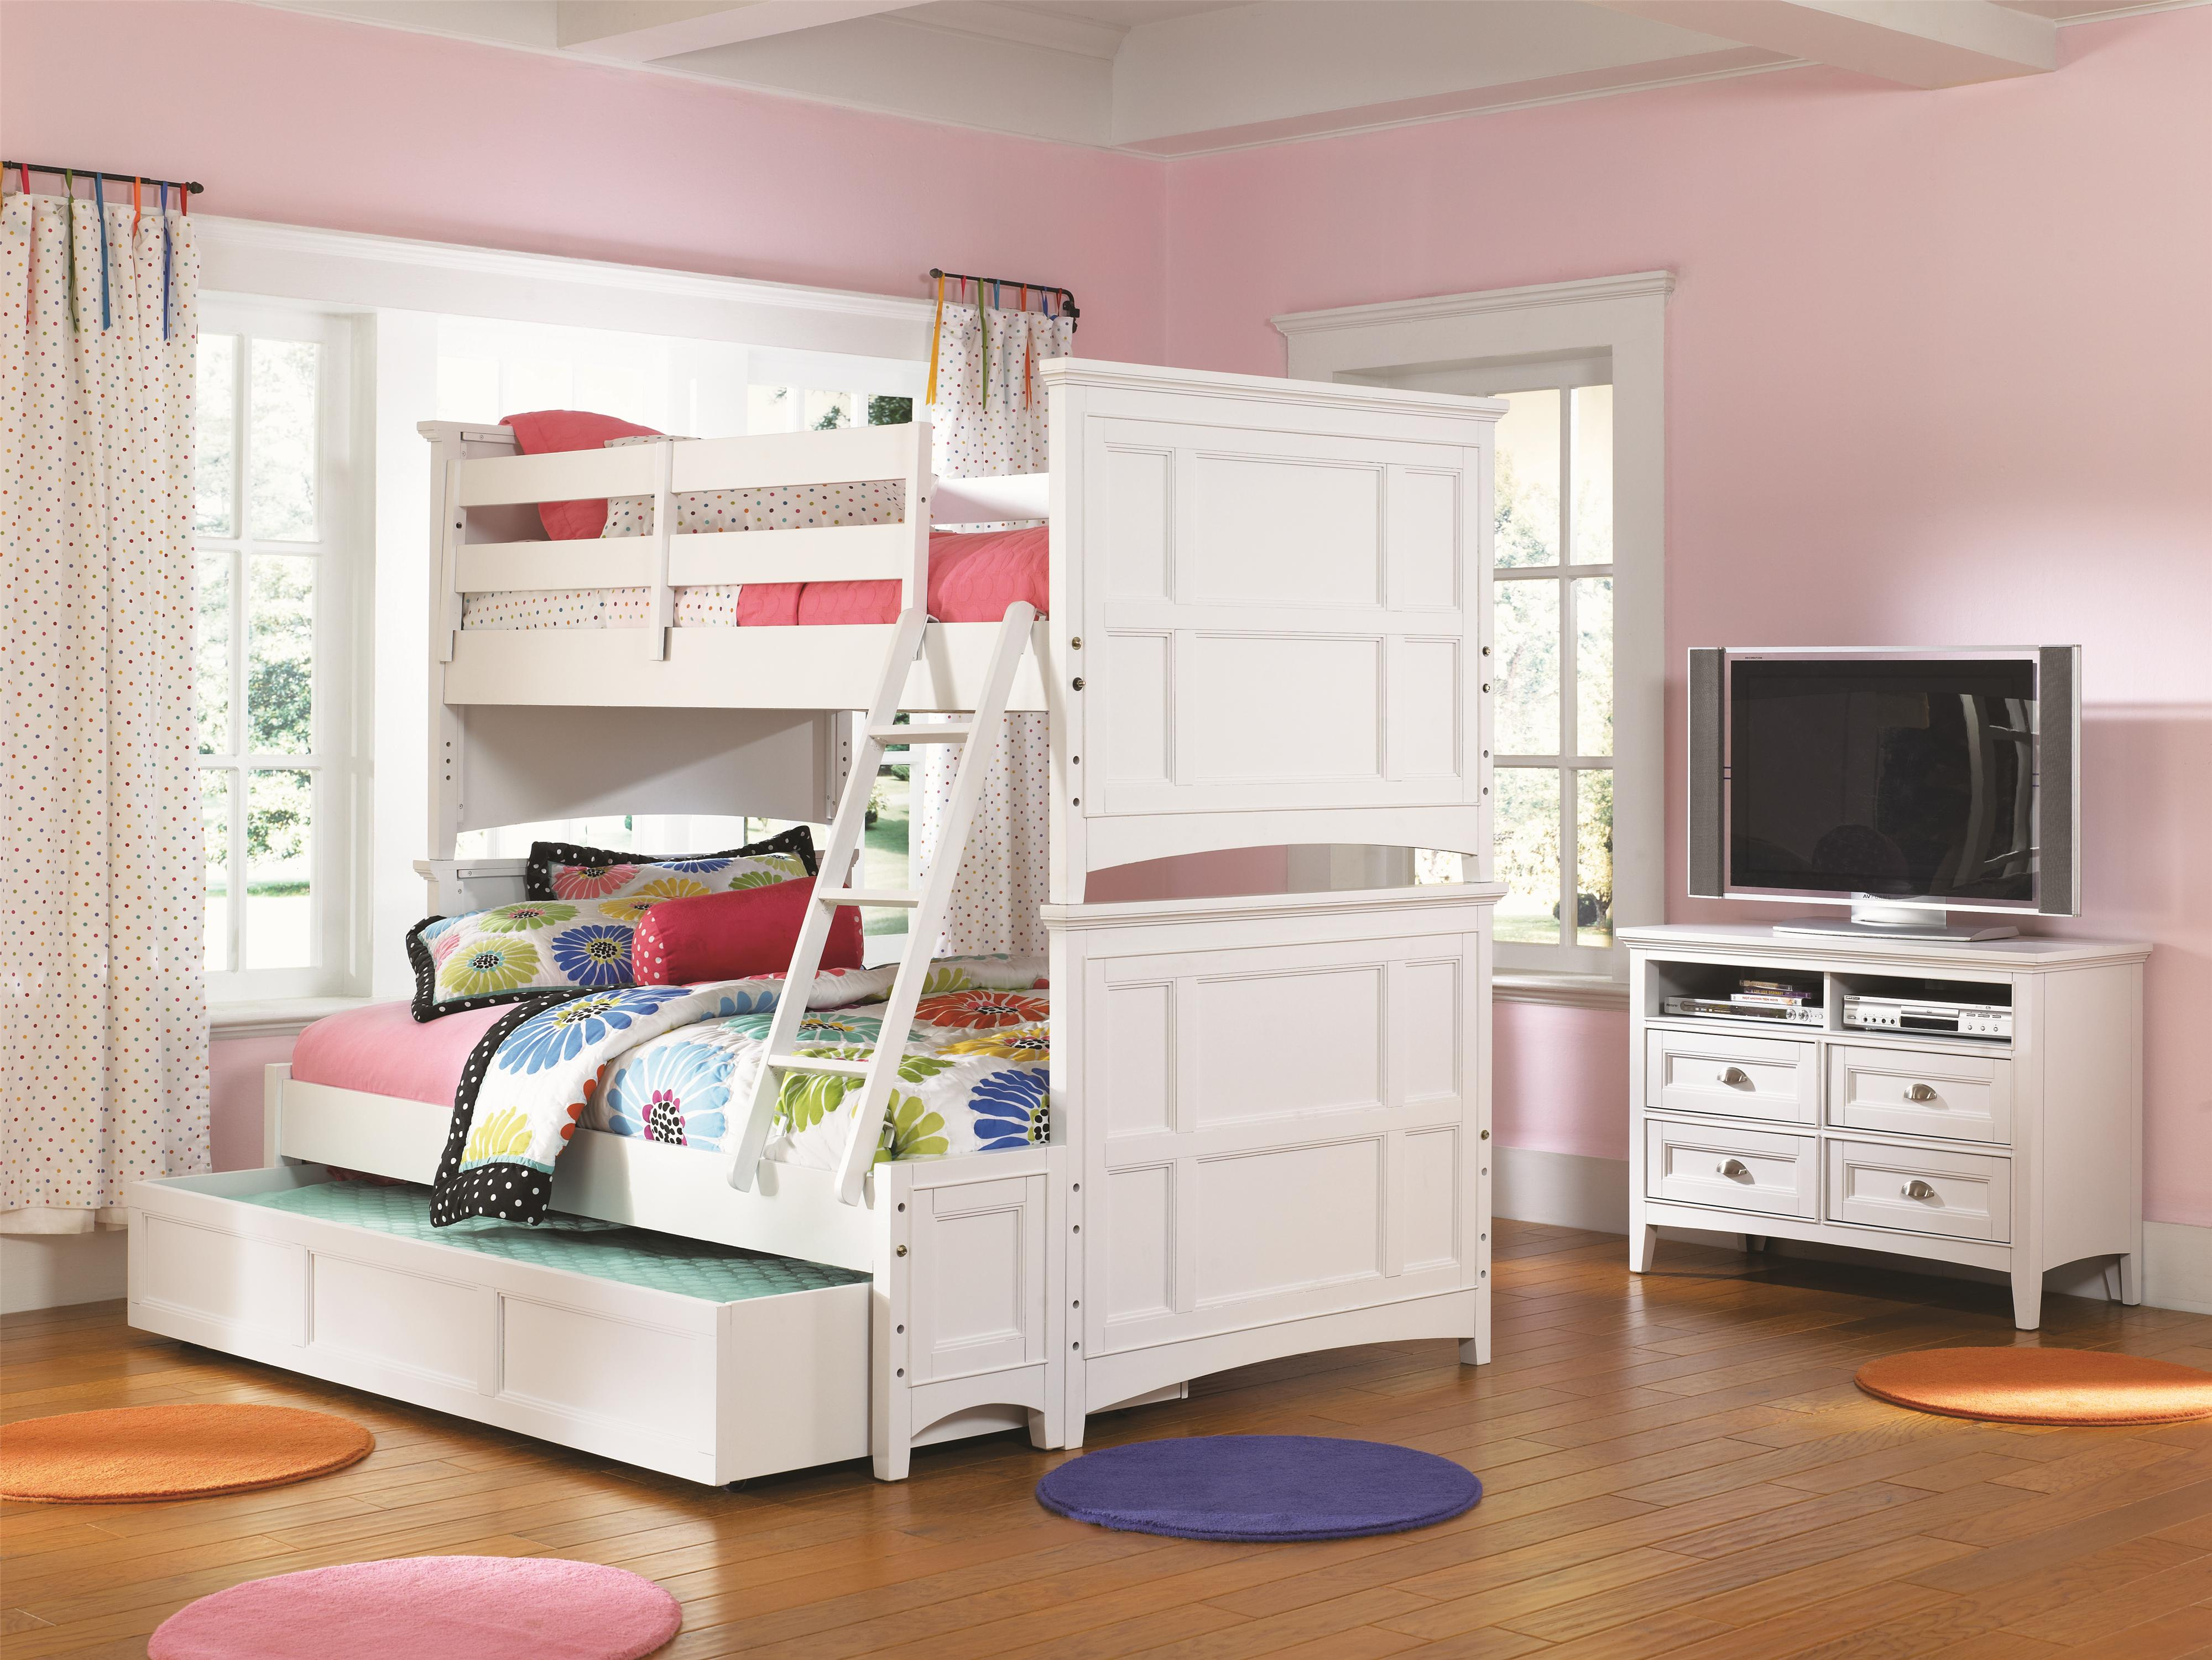 Next Bedroom Wallpaper Piper Twin Lounge Bed With Bookcase And Underbed Storage Drawers